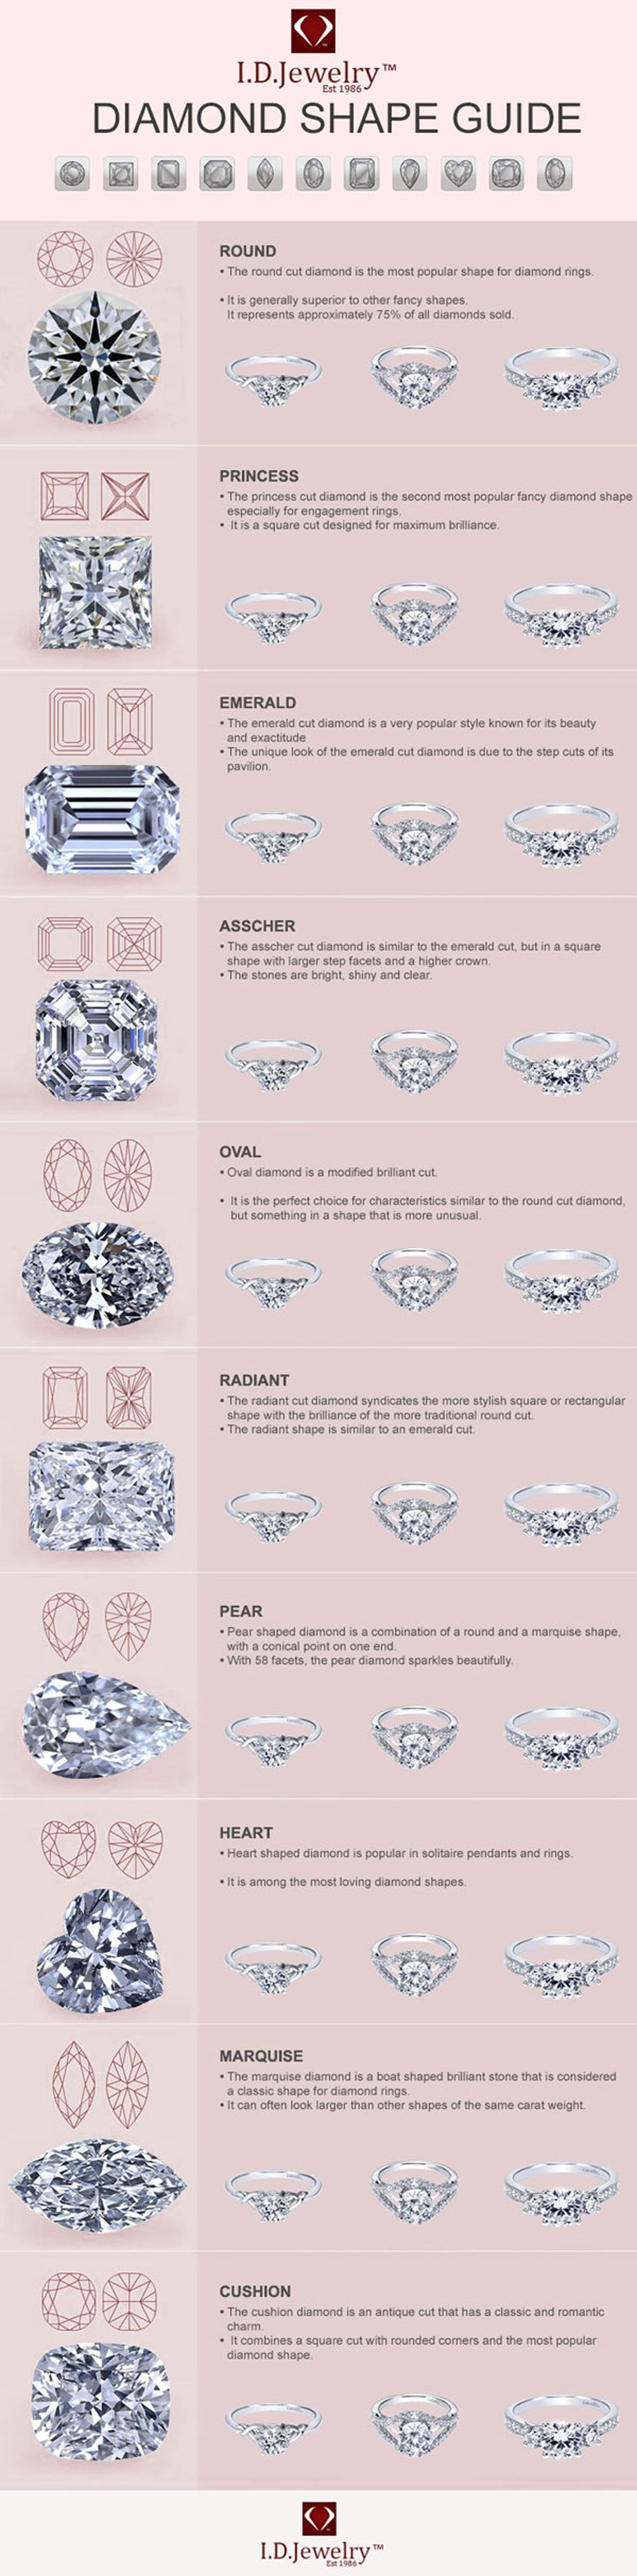 facet princess education from new diamond vision diamonds glory